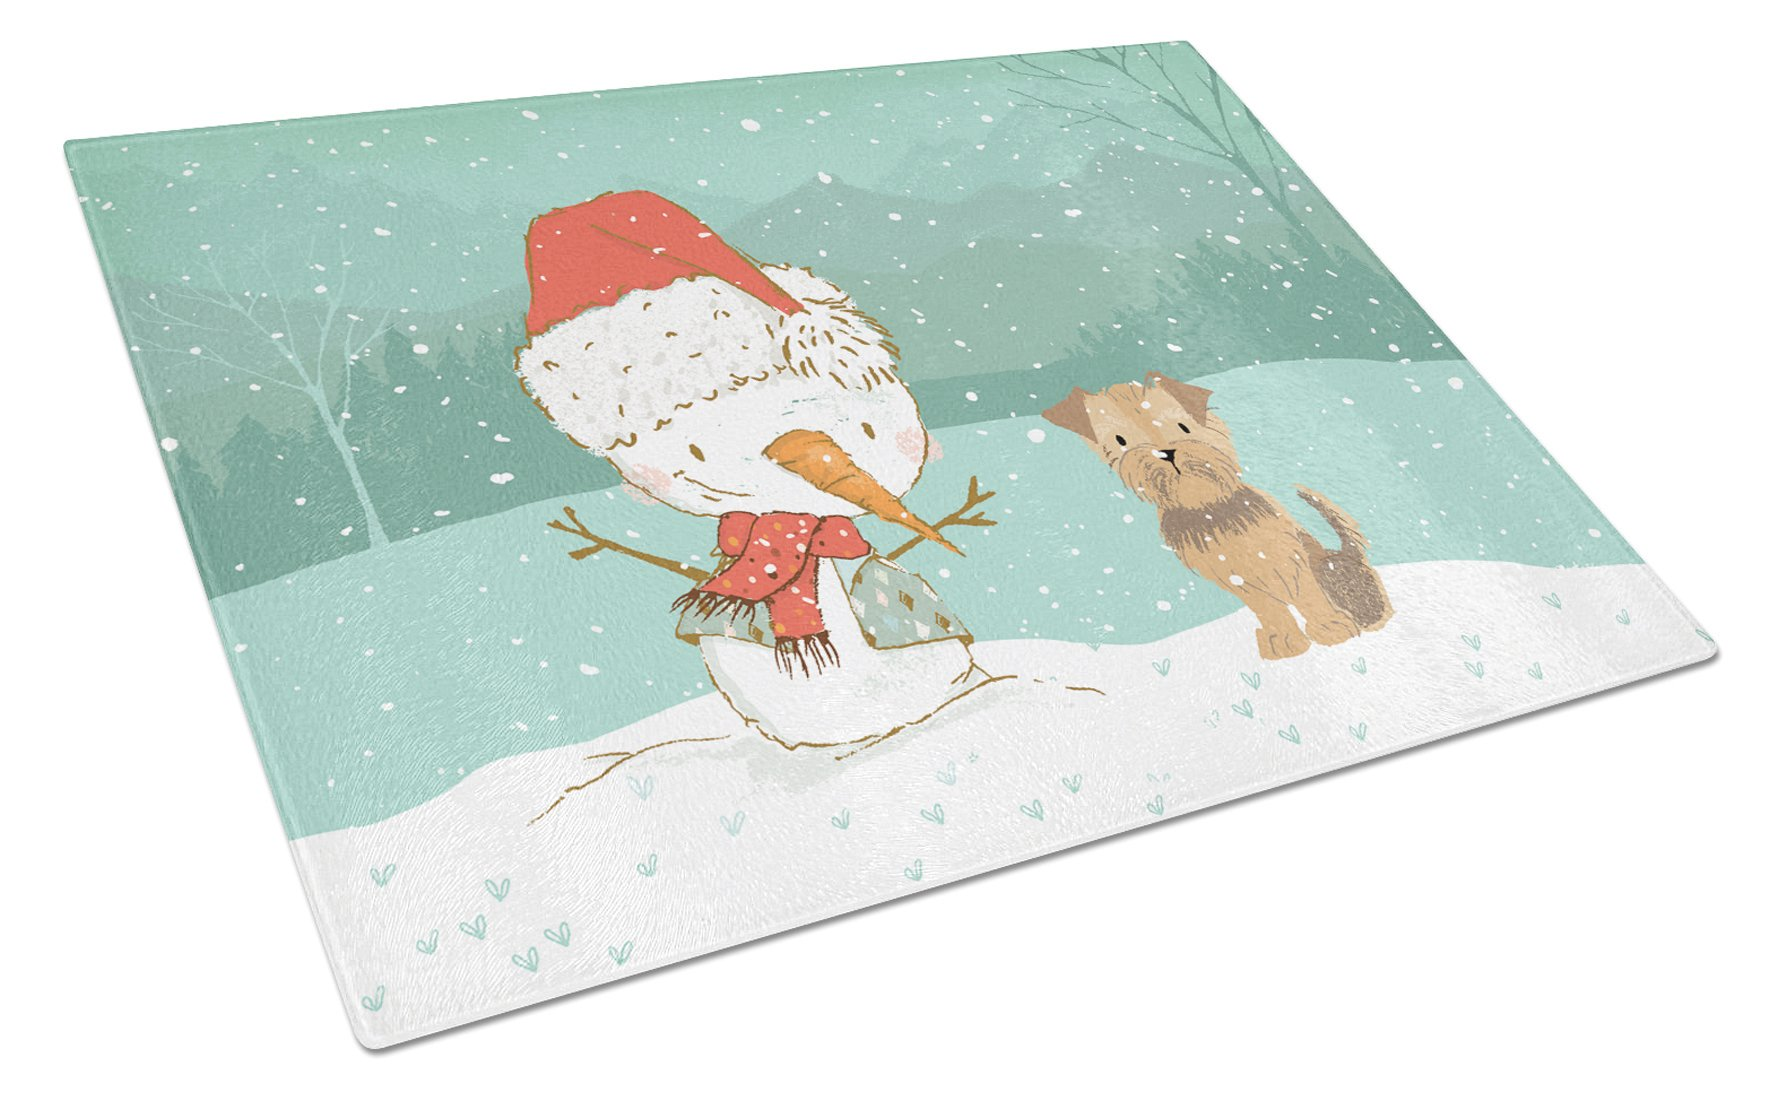 Yorkie Natural Ears Snowman Christmas Glass Cutting Board Large CK2099LCB by Caroline's Treasures